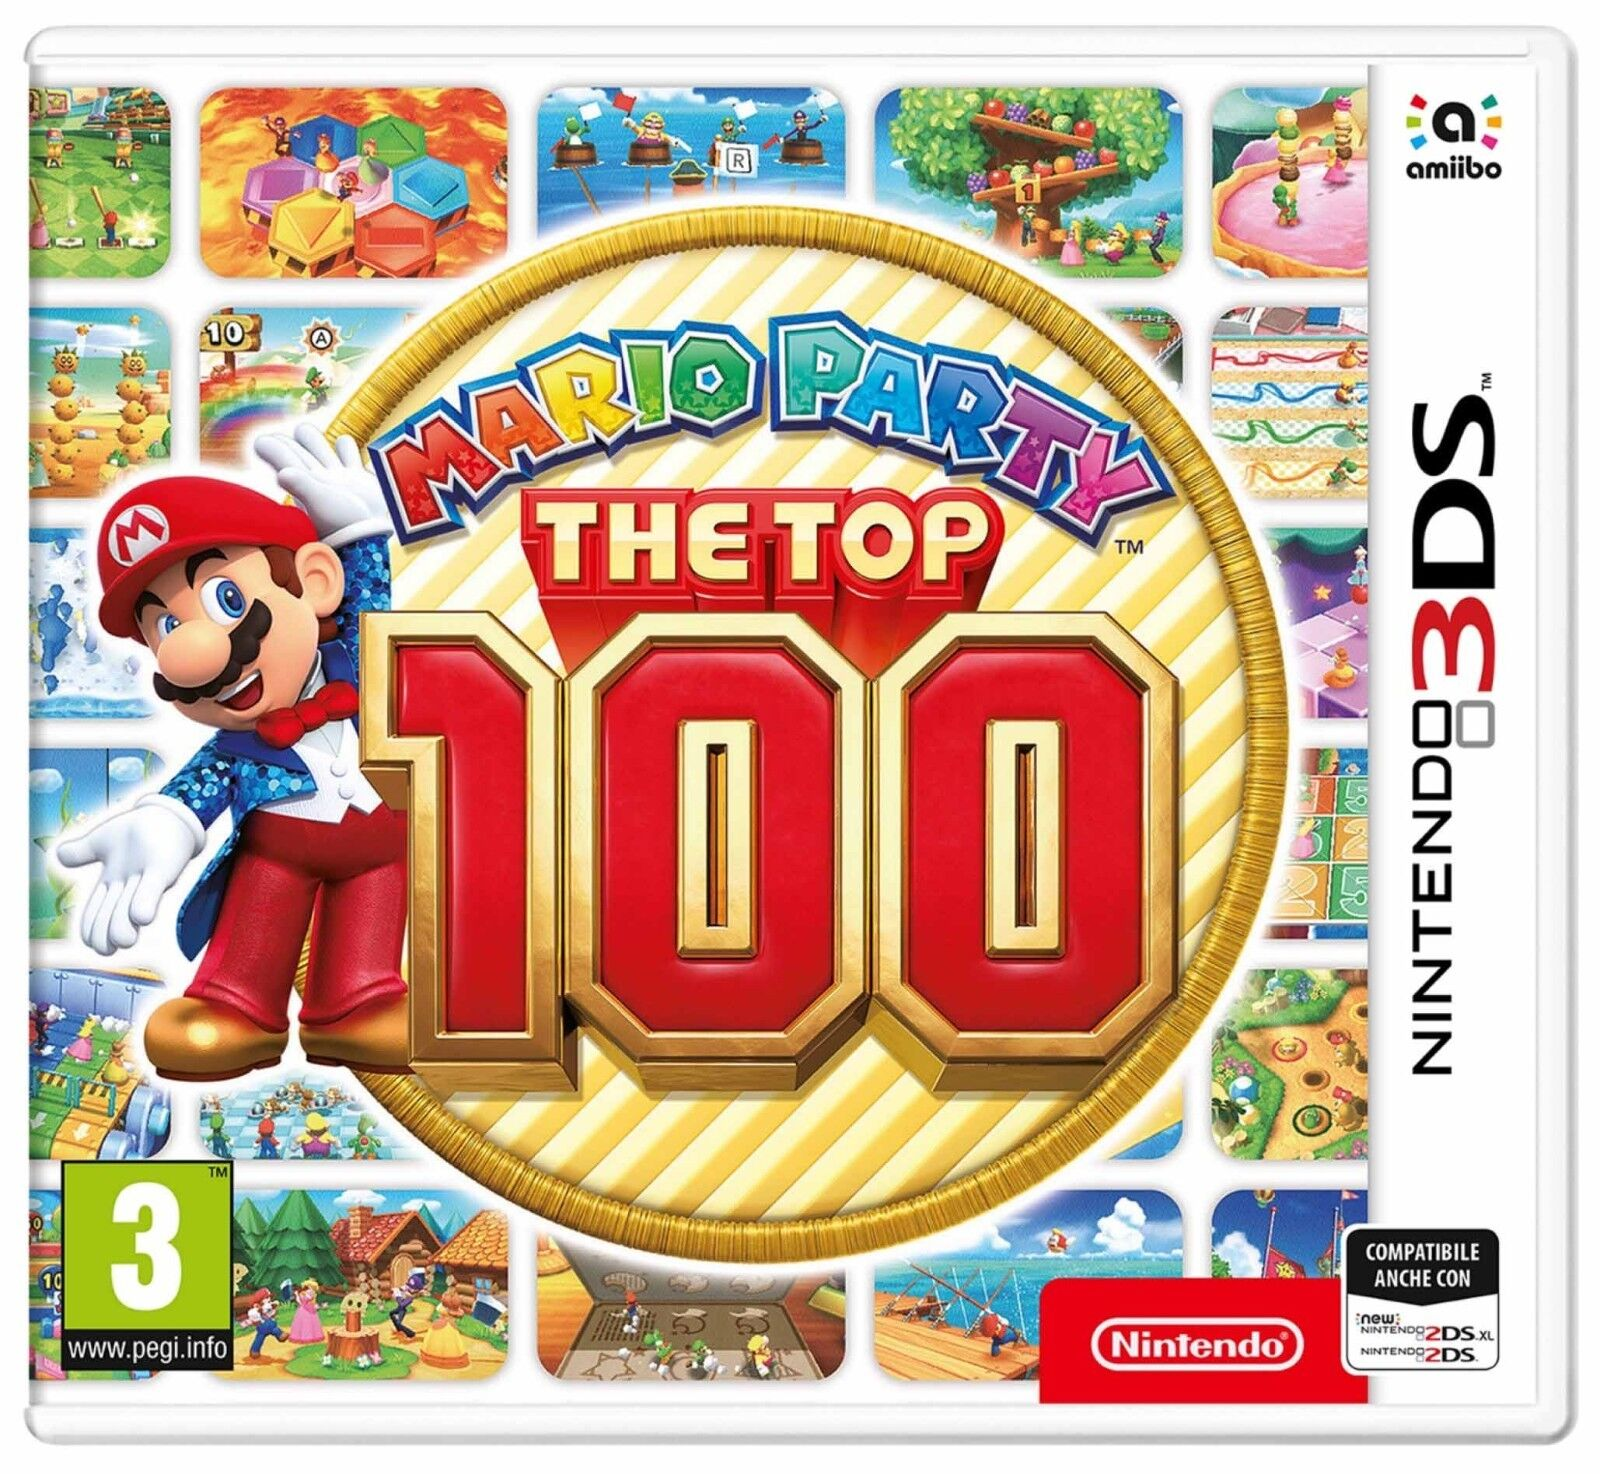 VIDEOGIOCO NINTENDO 3DS MARIO PARTY THE TOP 100 GIOCO ITALIANO PAL 2DS